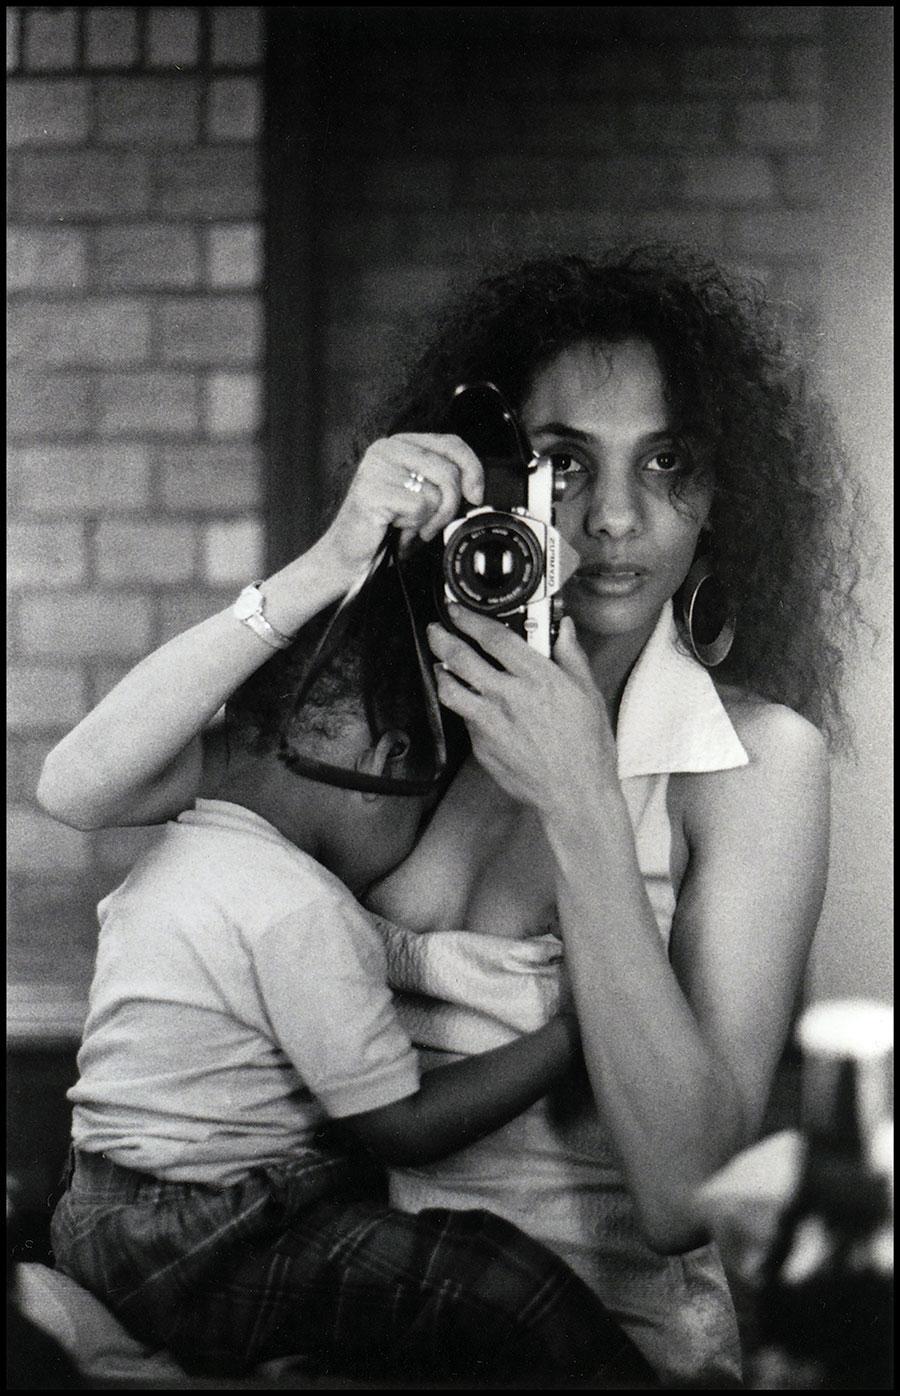 Ming Smith, Self-Portrait (Total), 1986, archival gelatin-silver print, 51×41cm. Courtesy: the artist and Pippy Houldsworth Gallery, London